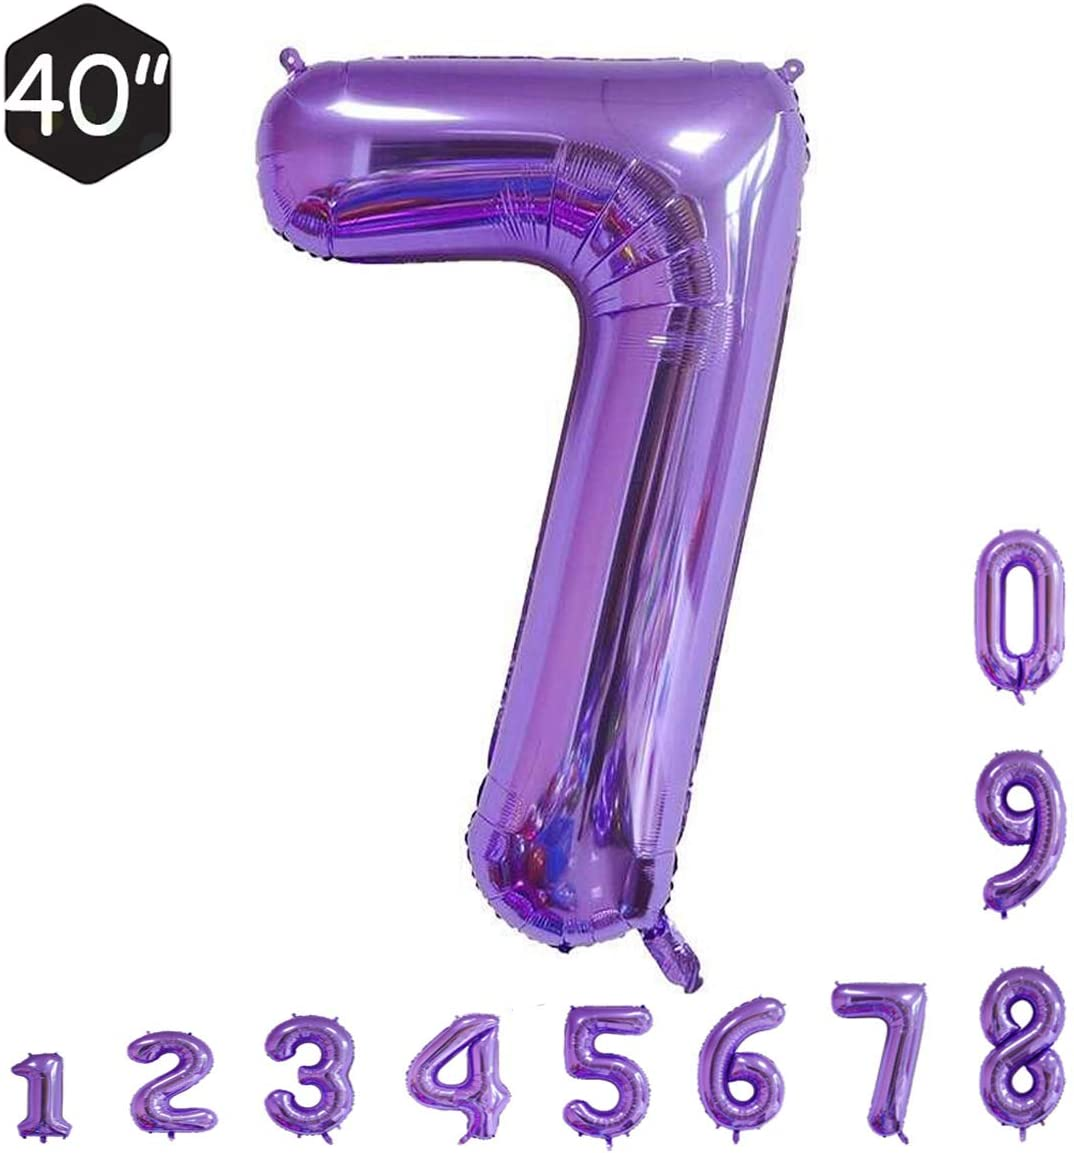 CRAZY GOTEND 40 Inch Purple Number Balloons 3th Birthday Party Decorations Helium Foil Mylar Number Balloon